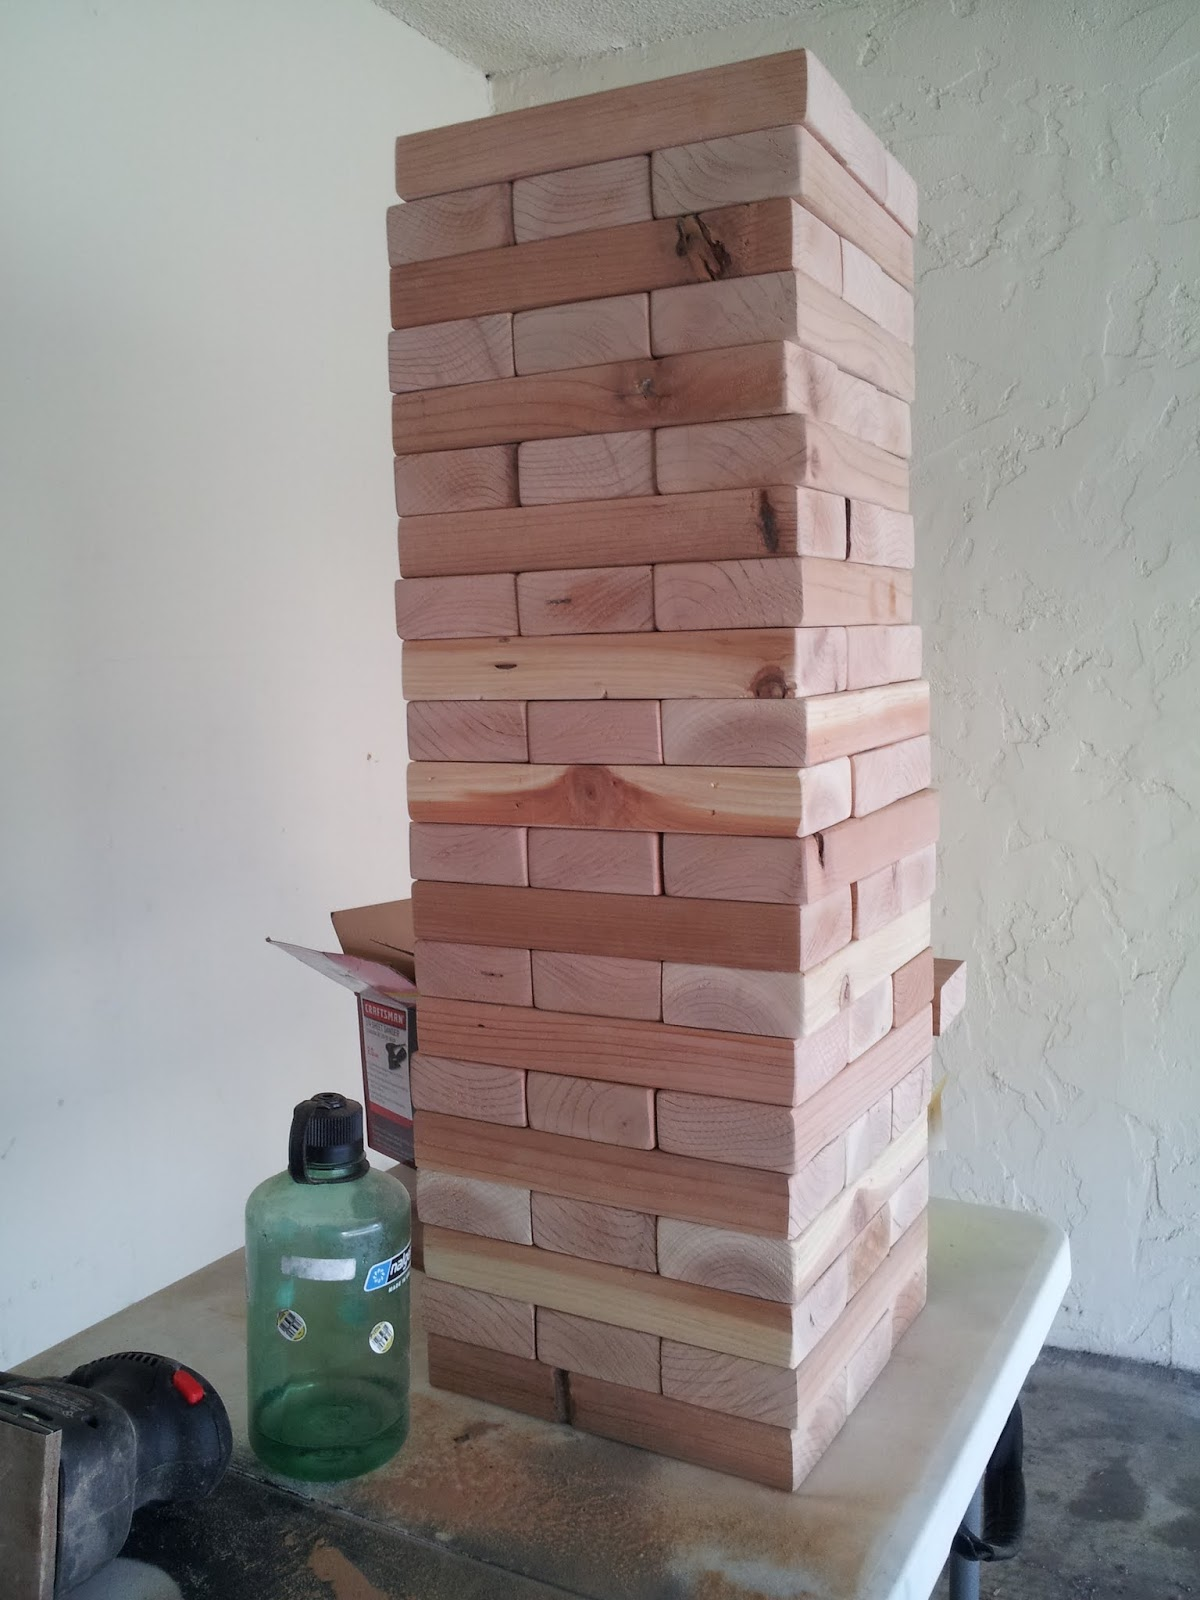 Think Crafty Thoughts: Giant Version of a Stacking Game Rhyming with